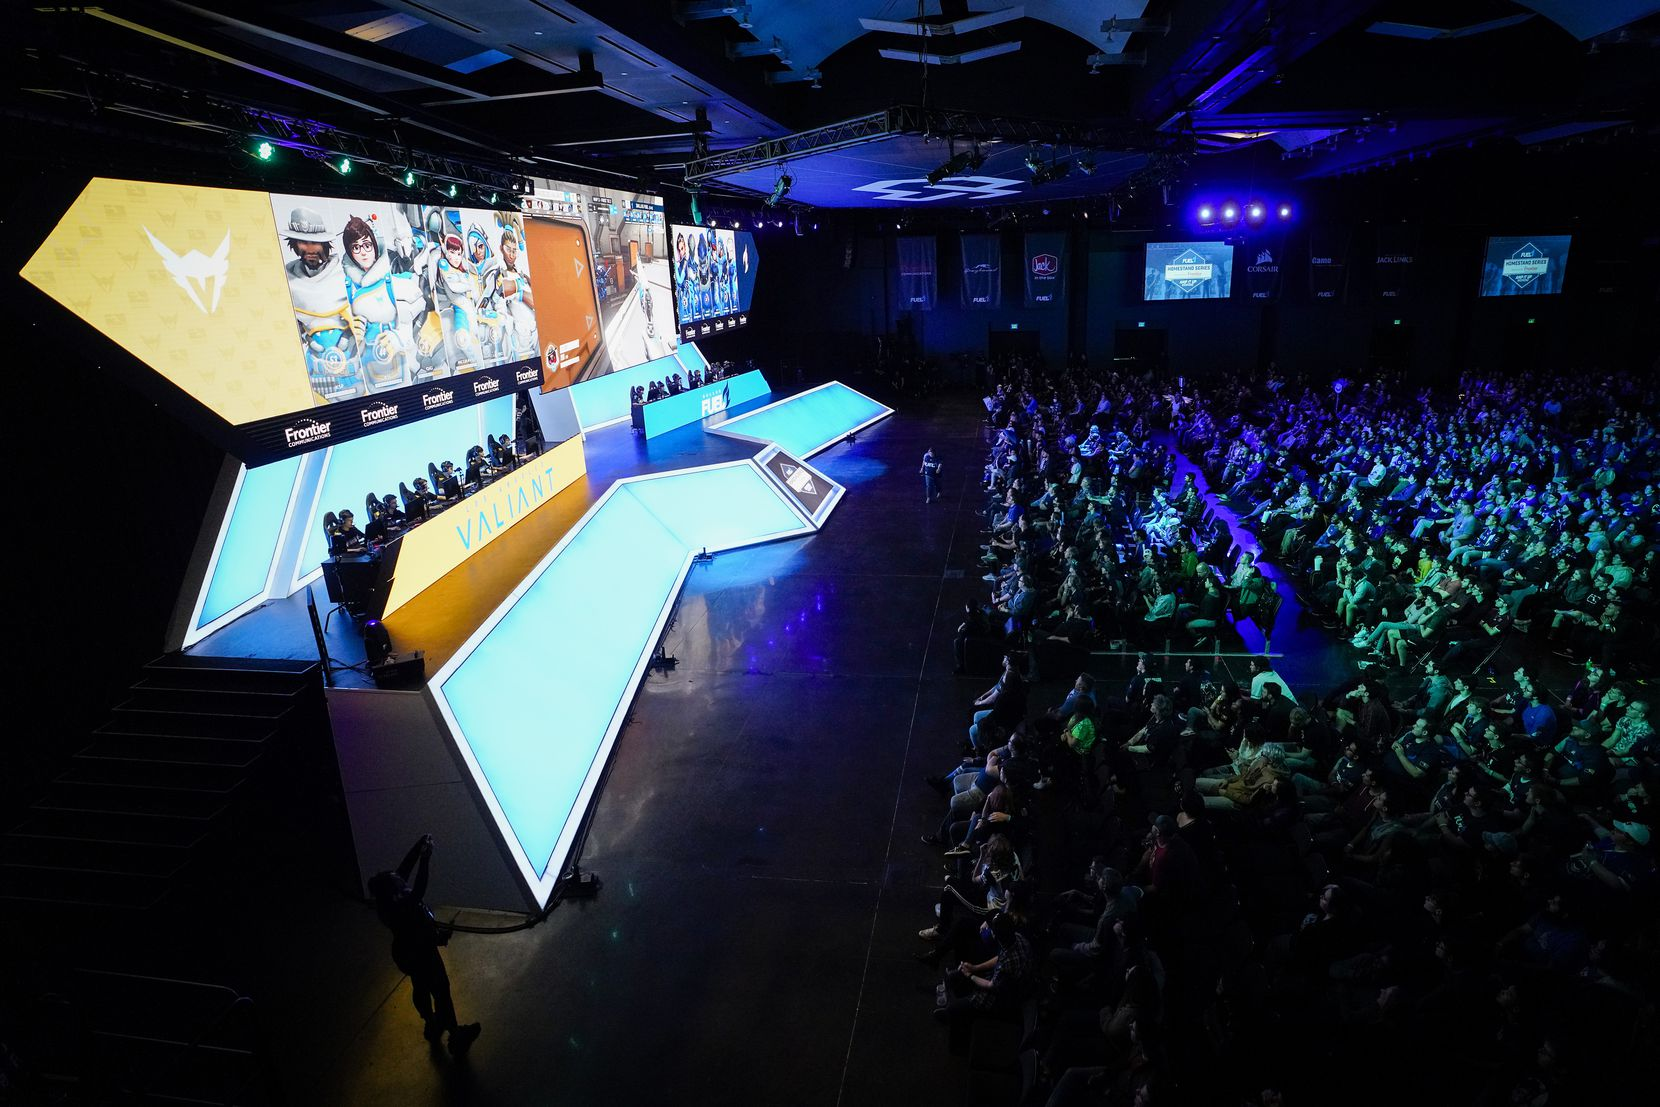 The Dallas Fuel face the  Los Angeles Valiant in a Overwatch League match at the Arlington Esports Stadium on Saturday, Feb. 8, 2020, in Arlington.